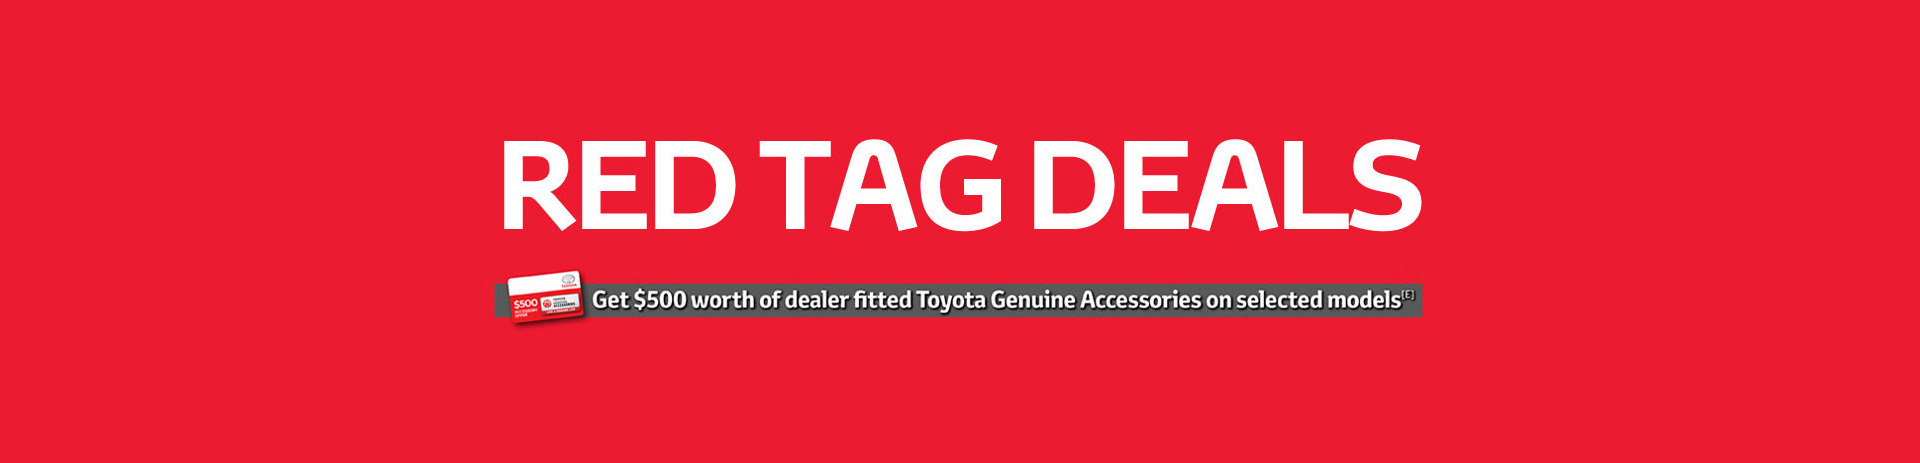 Red Tag Deals